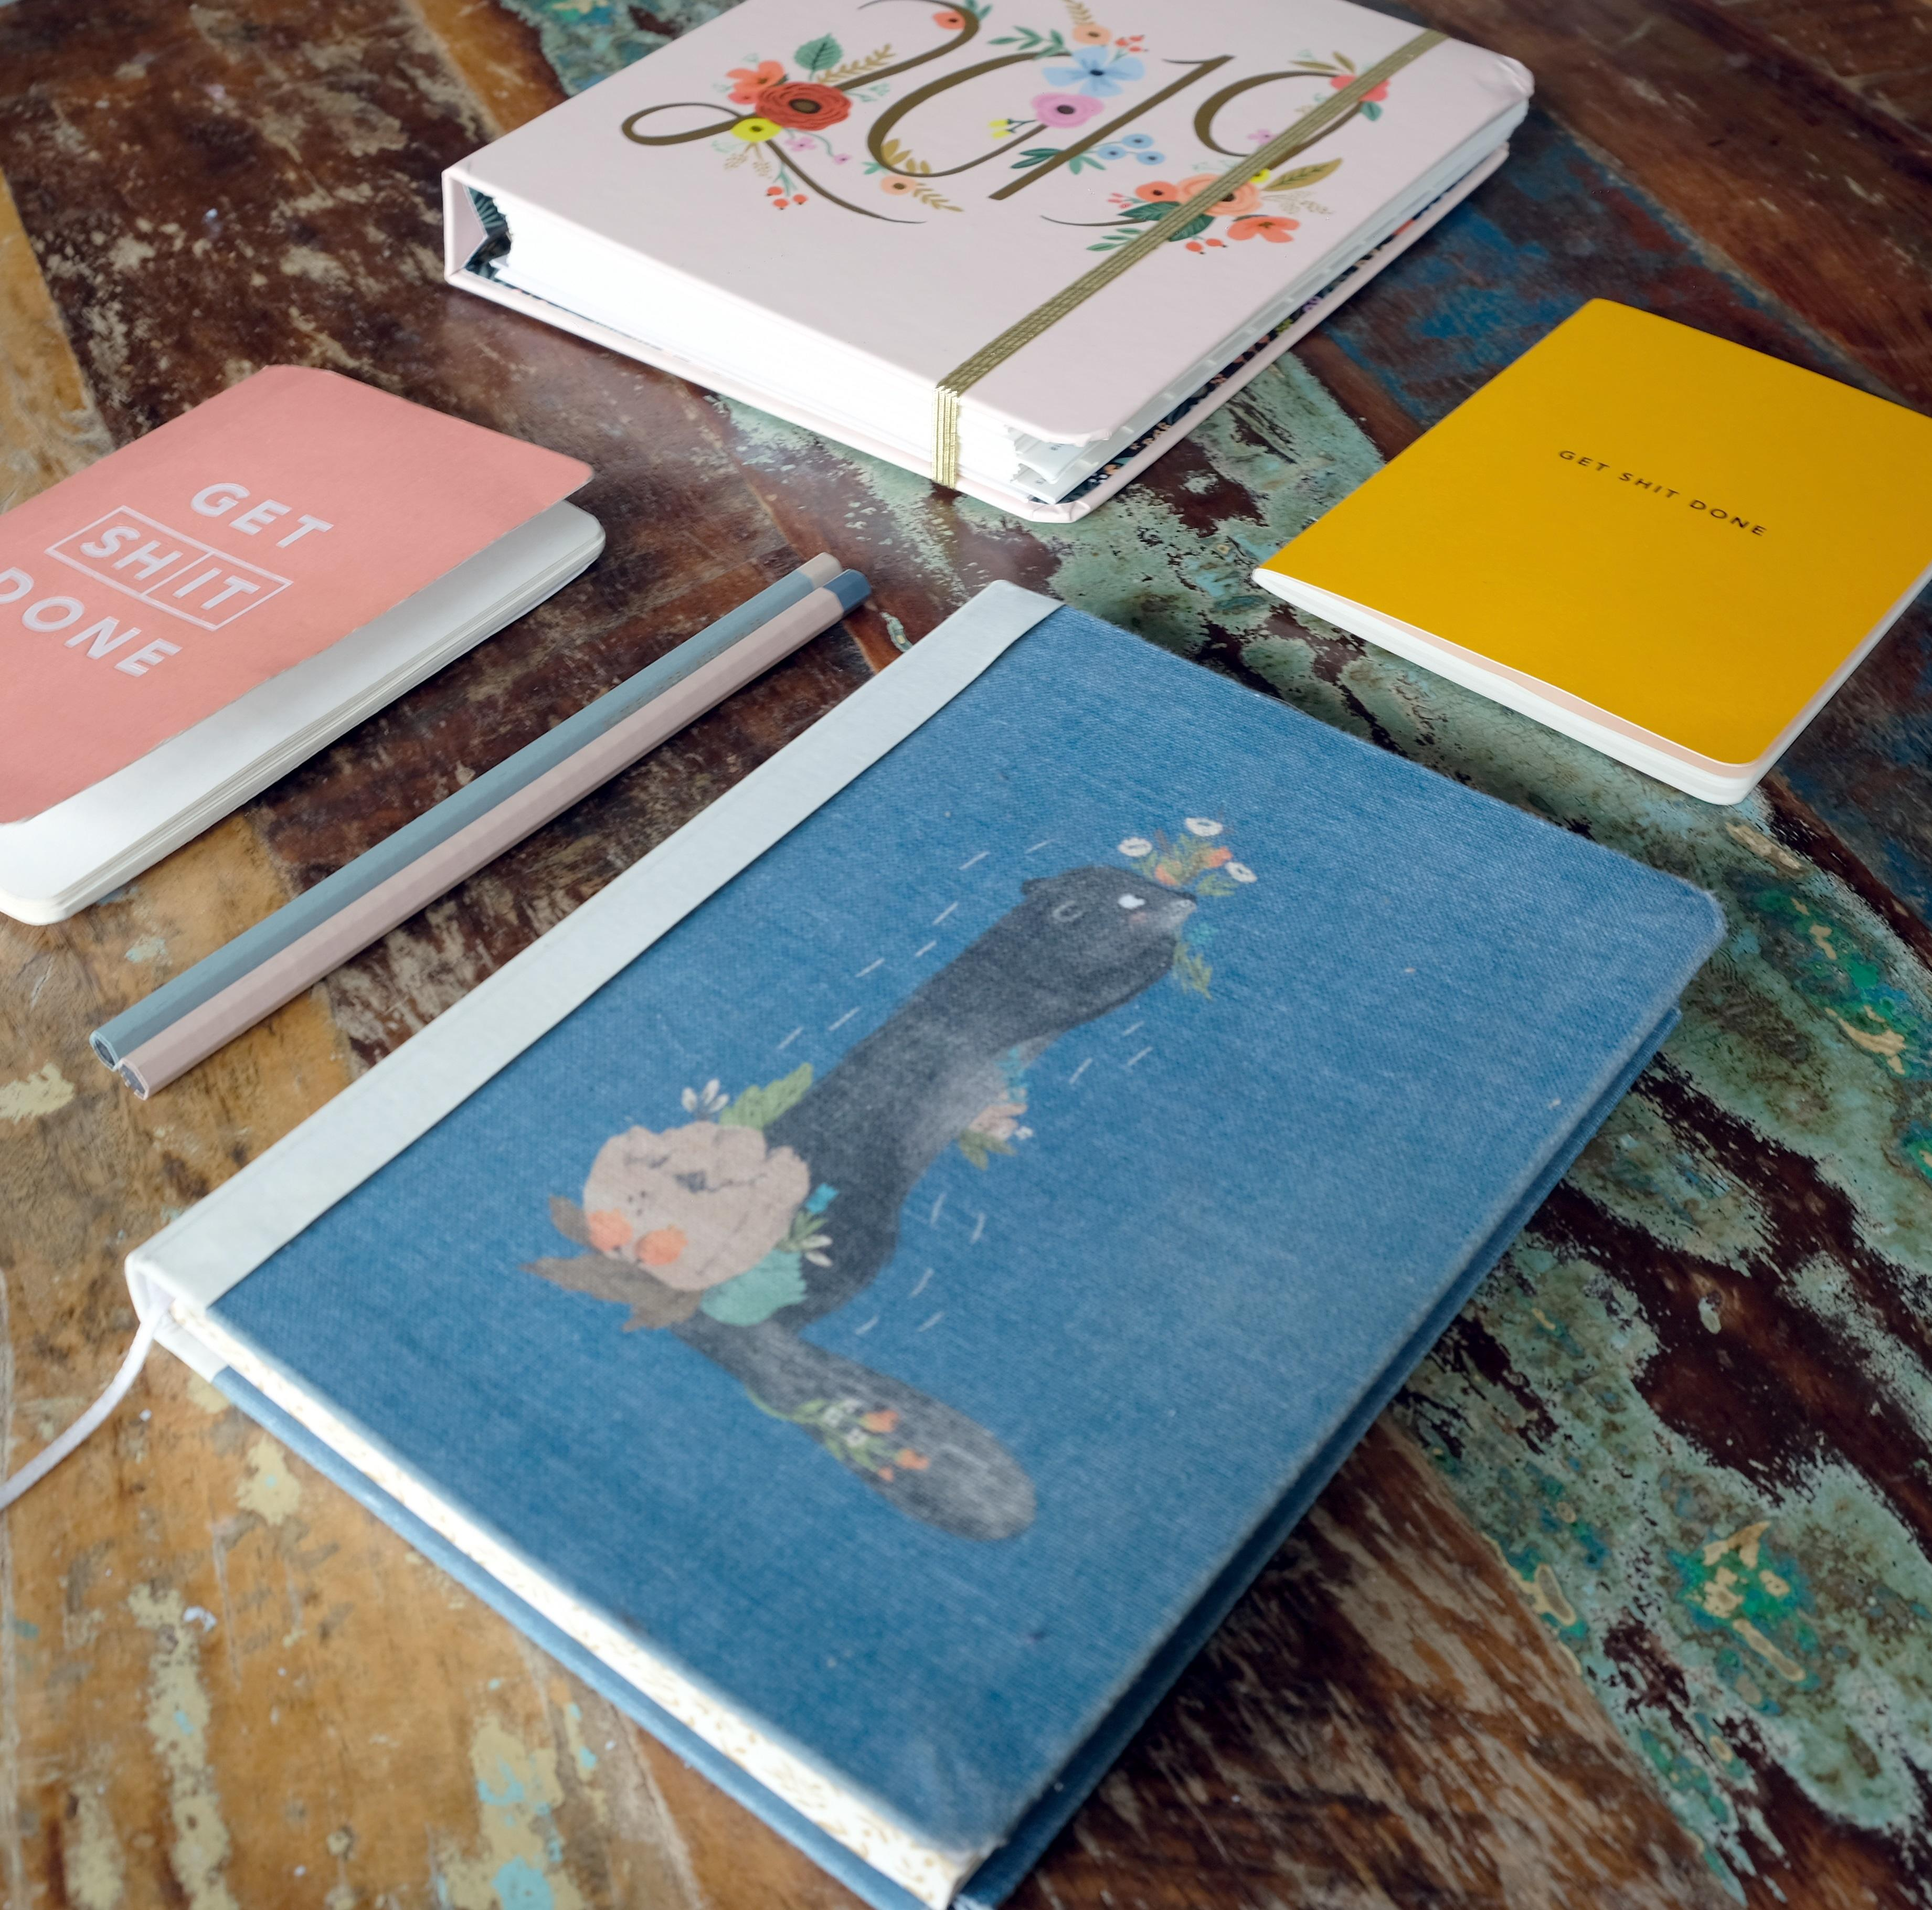 Diaries and planners at Albert & Moo